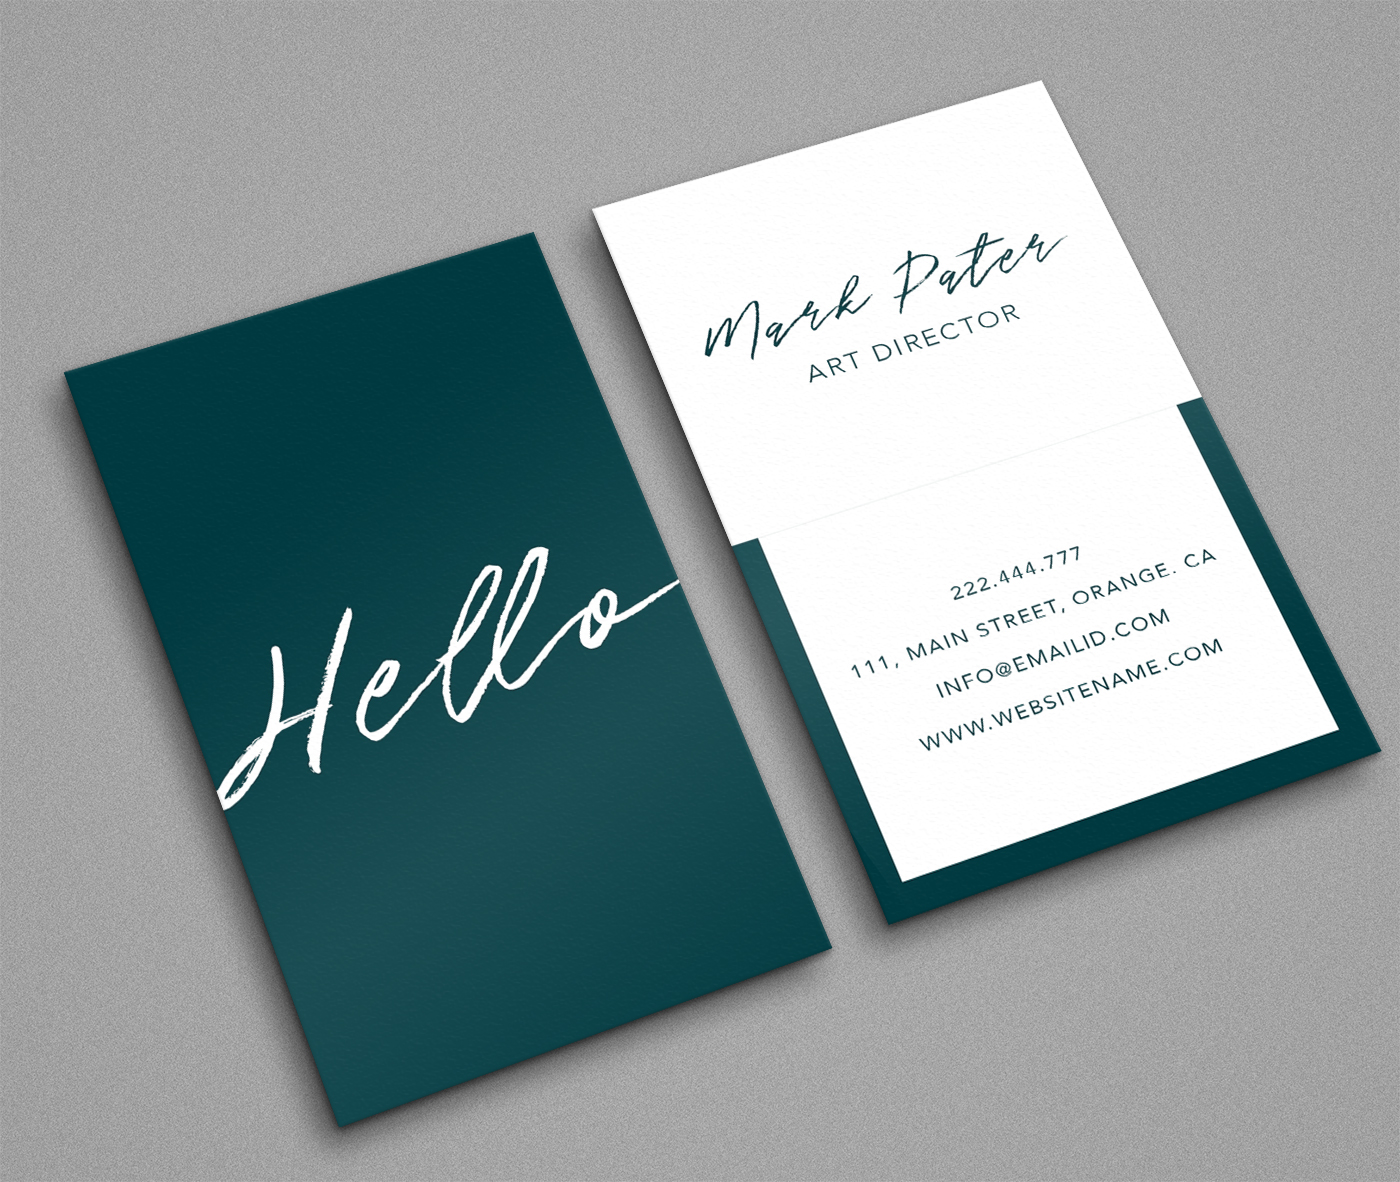 Professional hello script business card example image 1